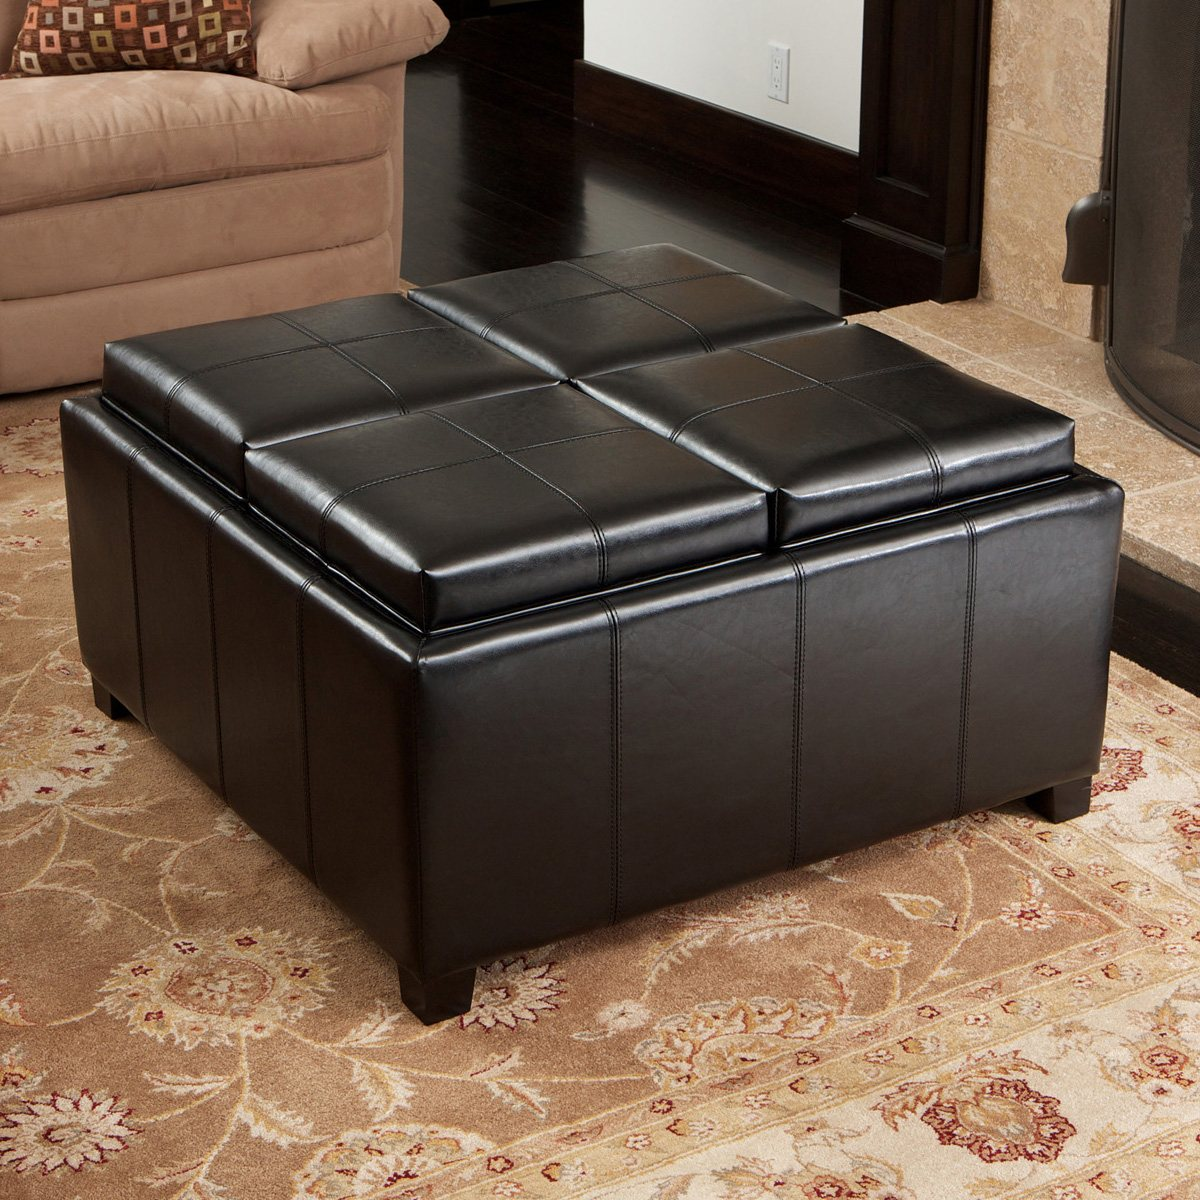 Fullsize Of Square Storage Ottoman